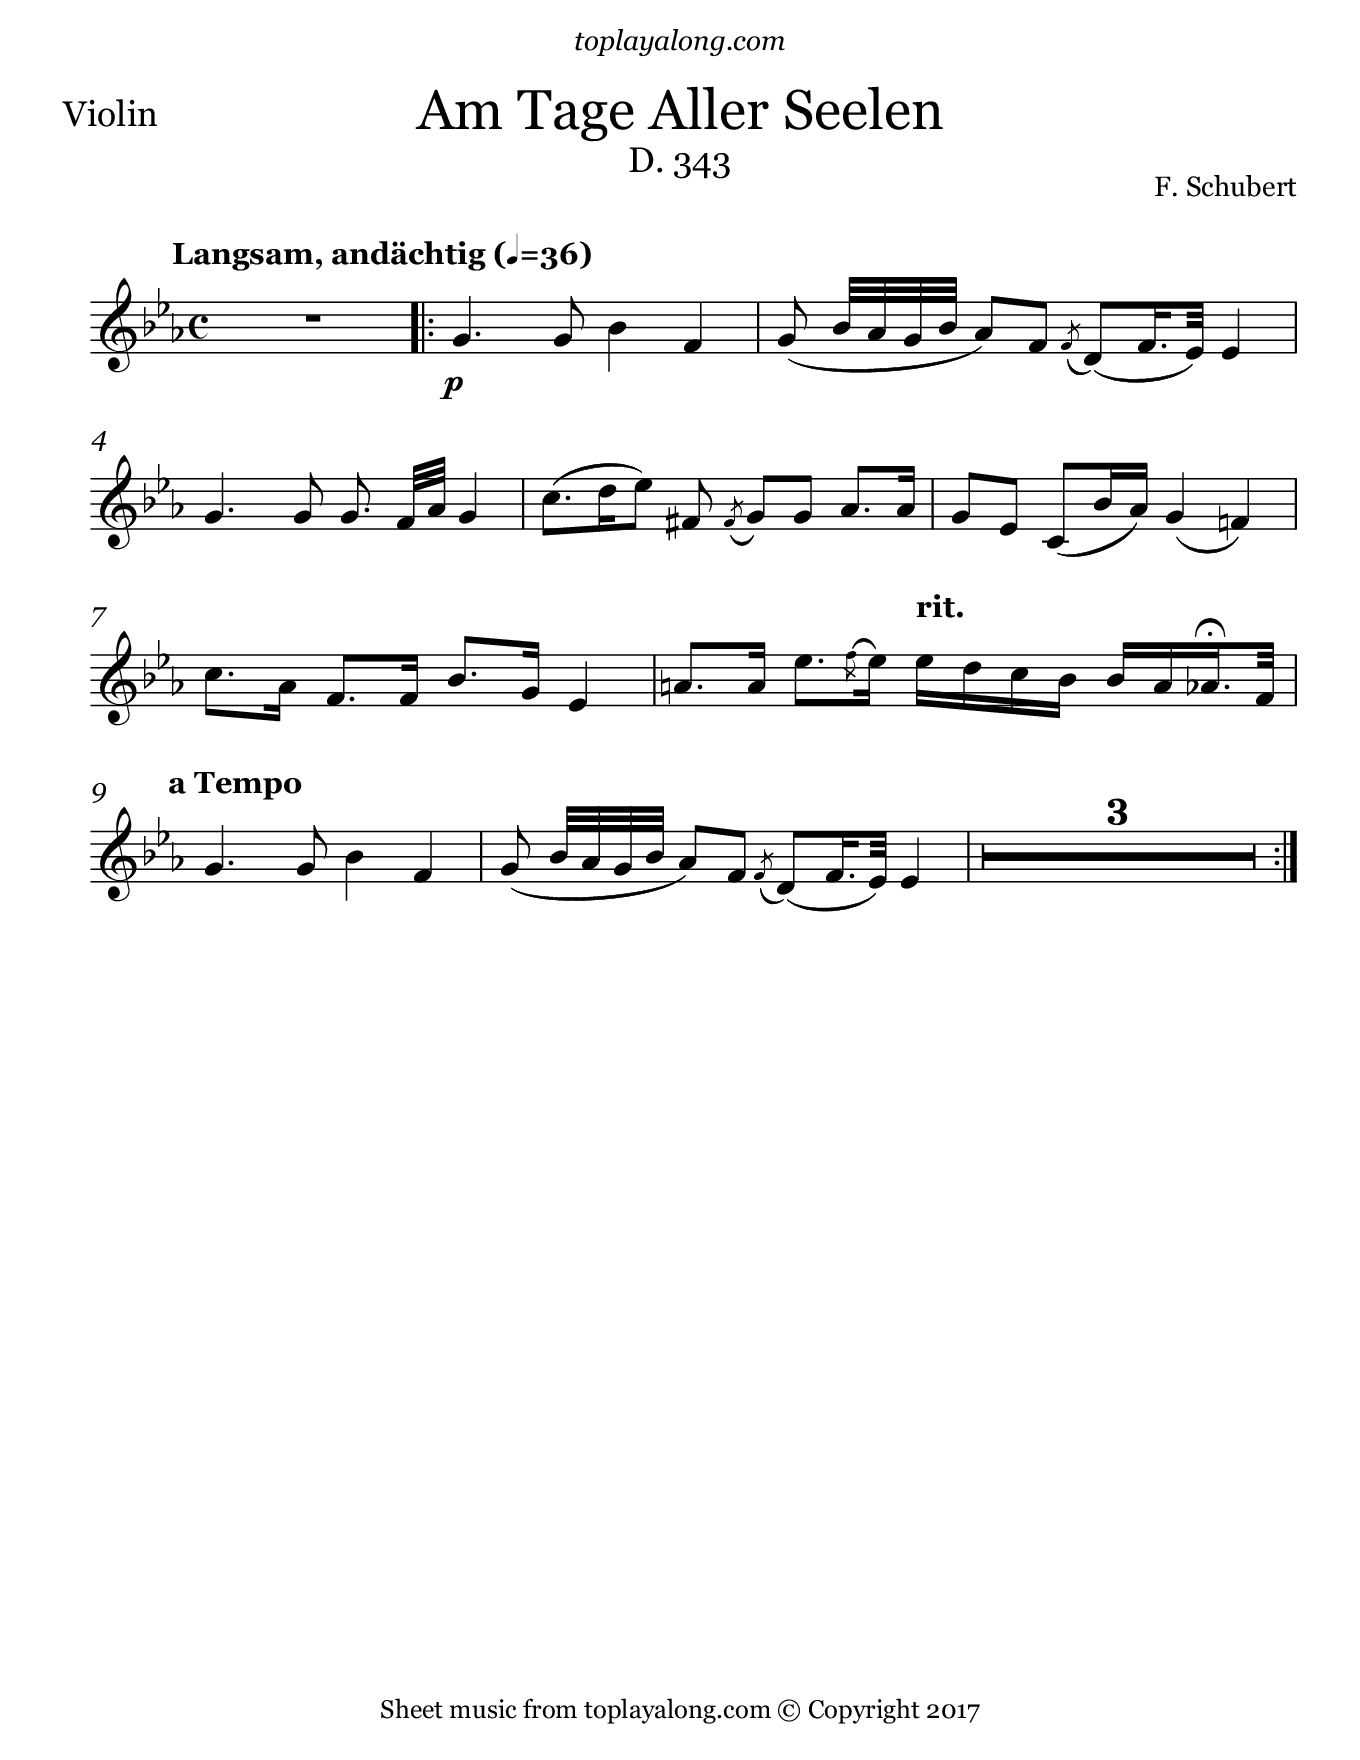 Am Tage Aller Seelen by Schubert. Sheet music for Violin, page 1.